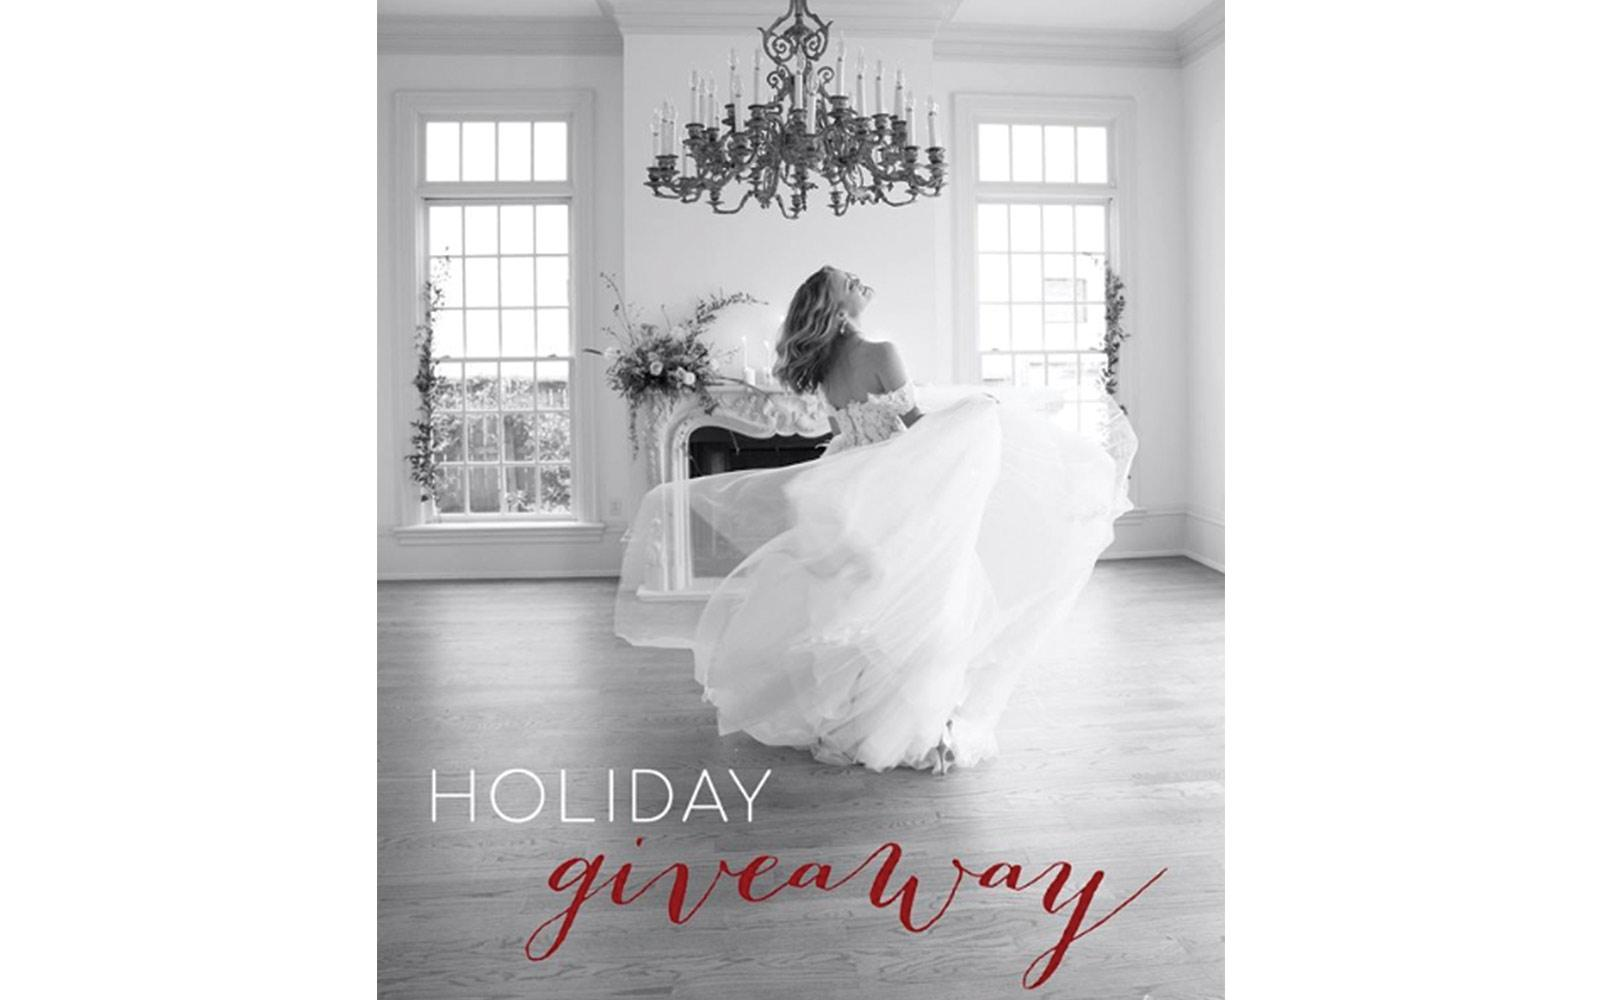 belle ame giveaway